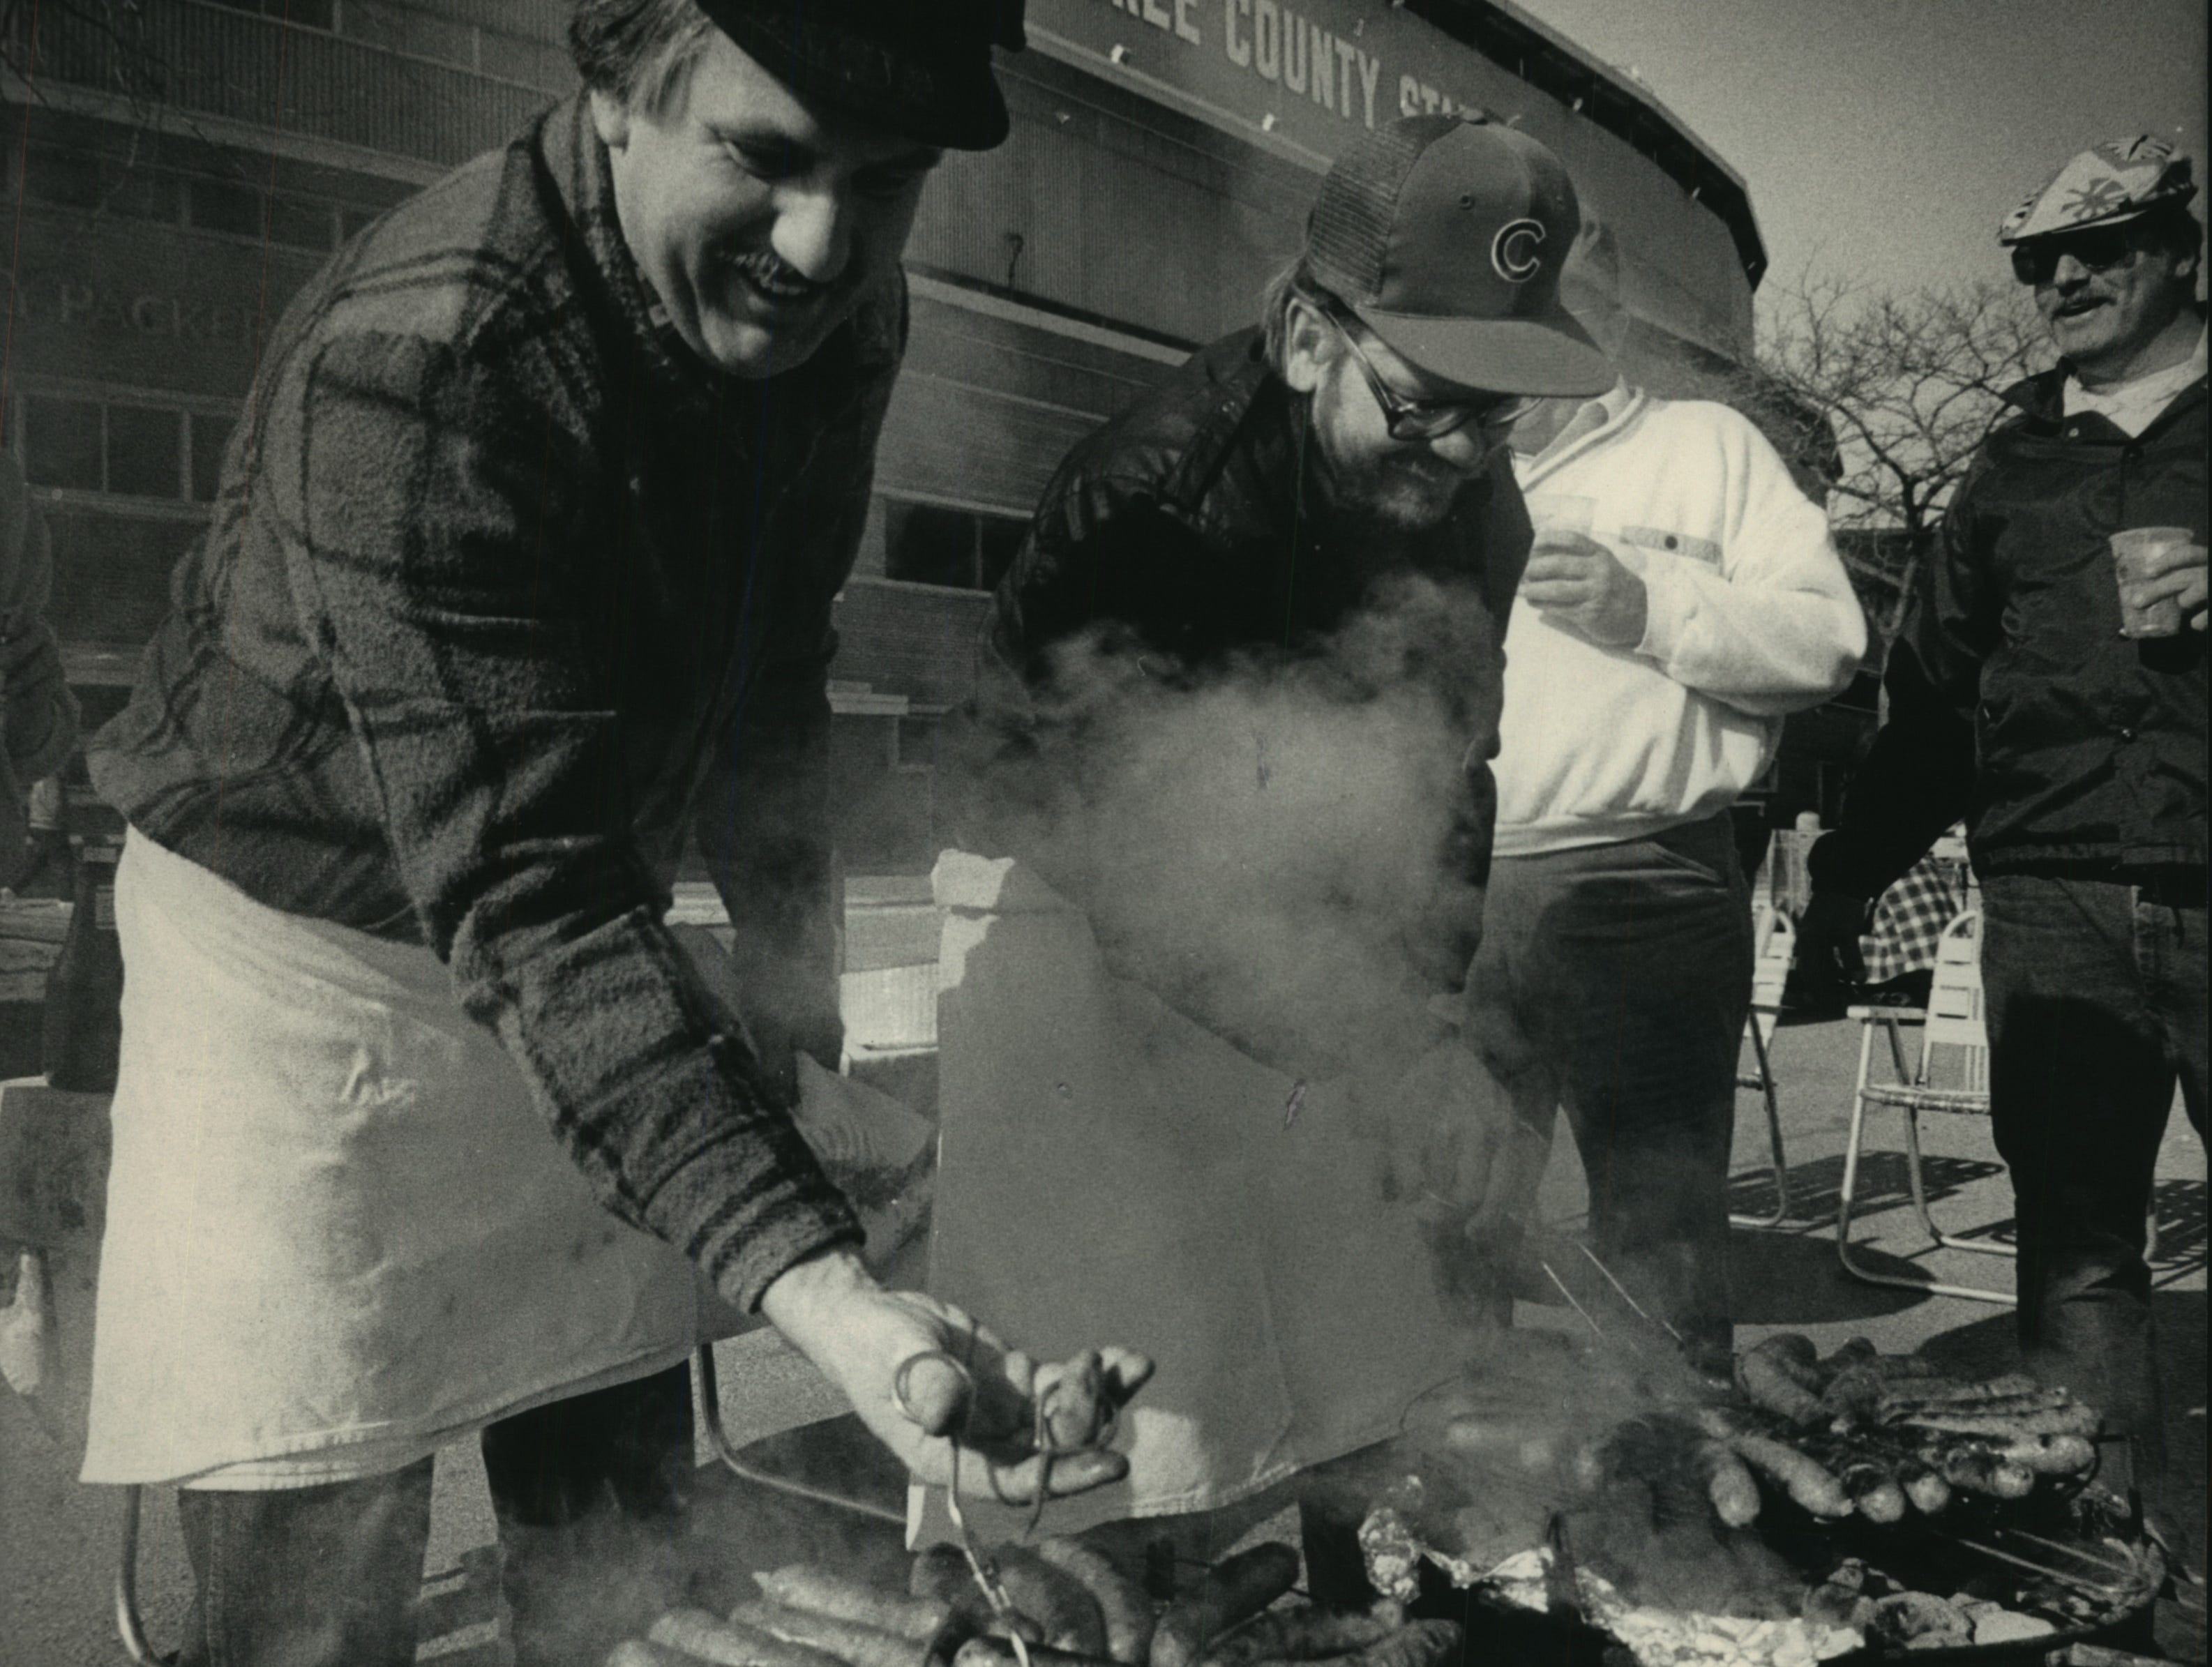 John Graber (left) and Bill Hammerie do the cooking as they joined friends under sunny skies in the parking lot at County Stadium for opening day on April 6, 1987. The Brewers' 5-1 win over the Boston Red Sox in the home opener started a 13-game winning streak, tying a major-league record to start off a season (the record still stands). This photo was published in the April 6, 1987, Milwaukee Journal.